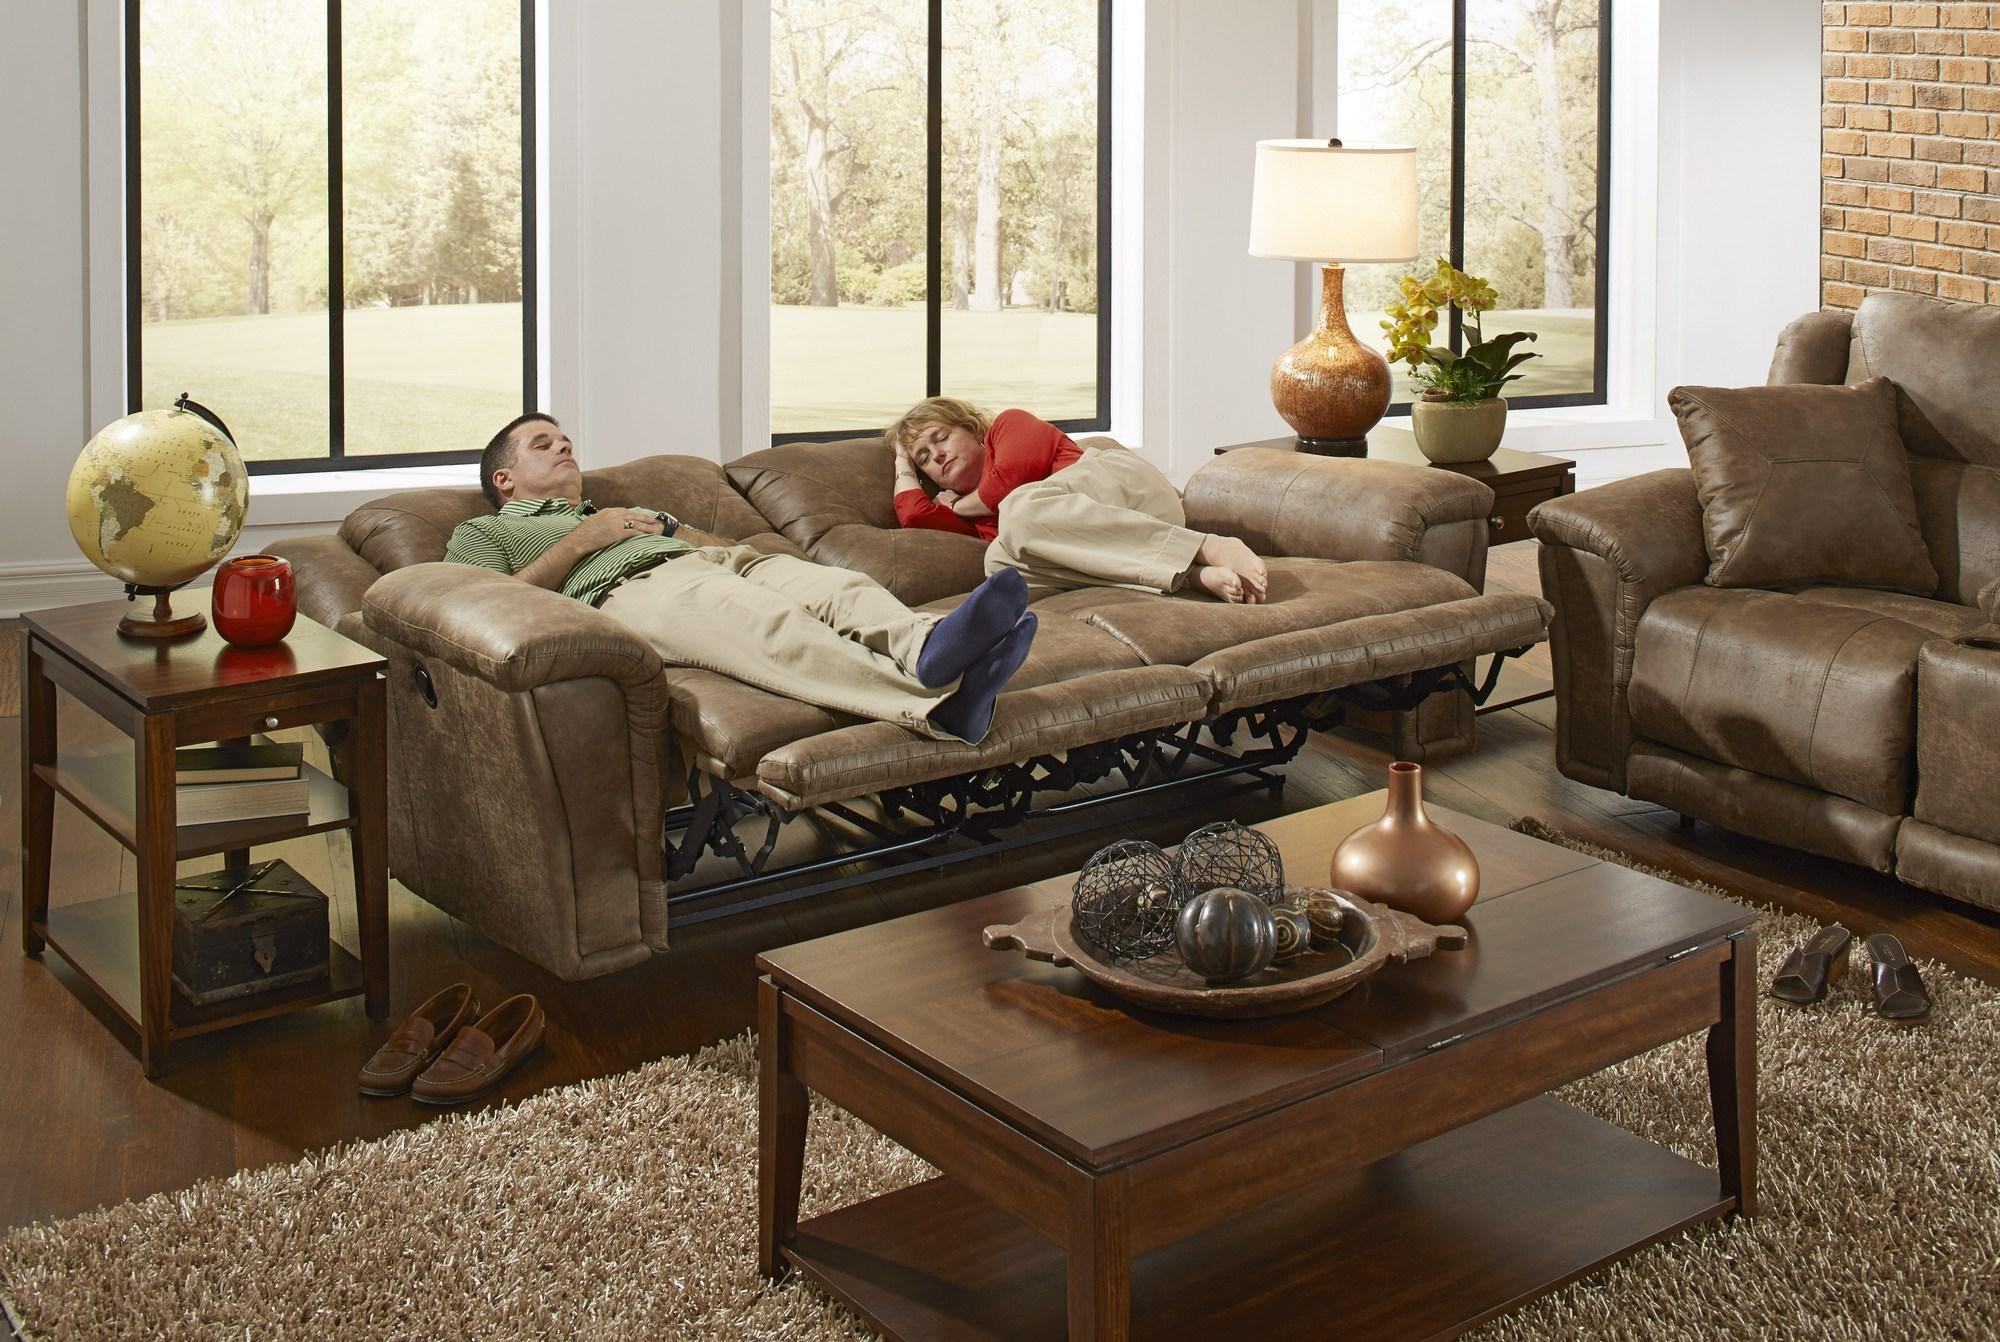 Catnapper Reclining Sofa And Loveseat | Tehranmix Decoration Intended For Catnapper Reclining Sofas (Image 10 of 20)